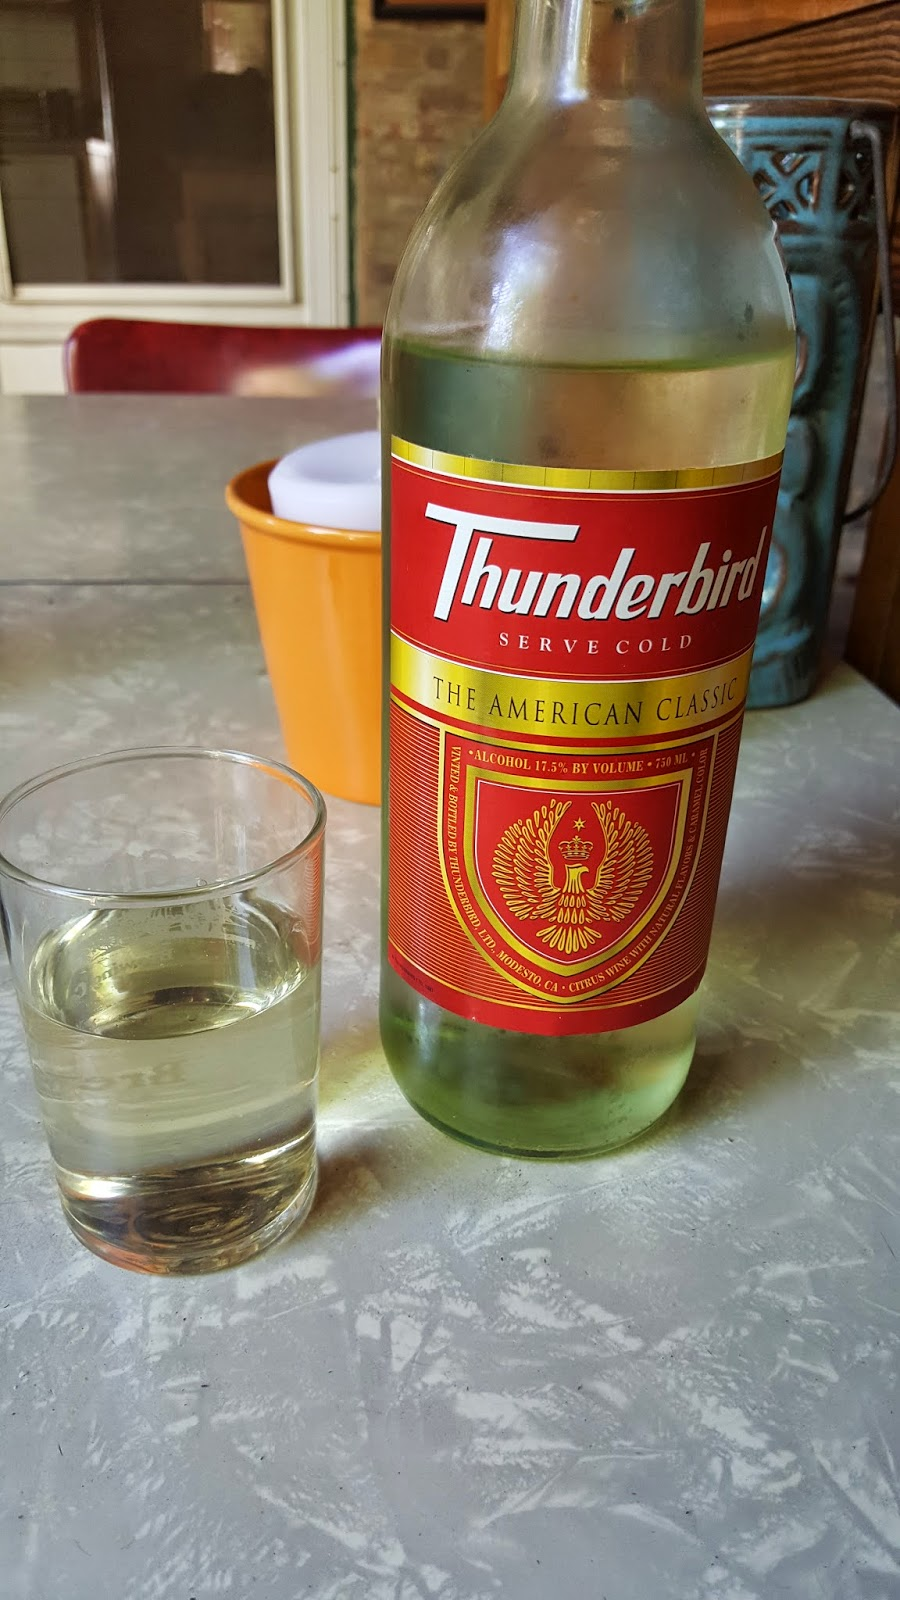 Thunderbird - A fine wine for fine Americans! - Bumming with